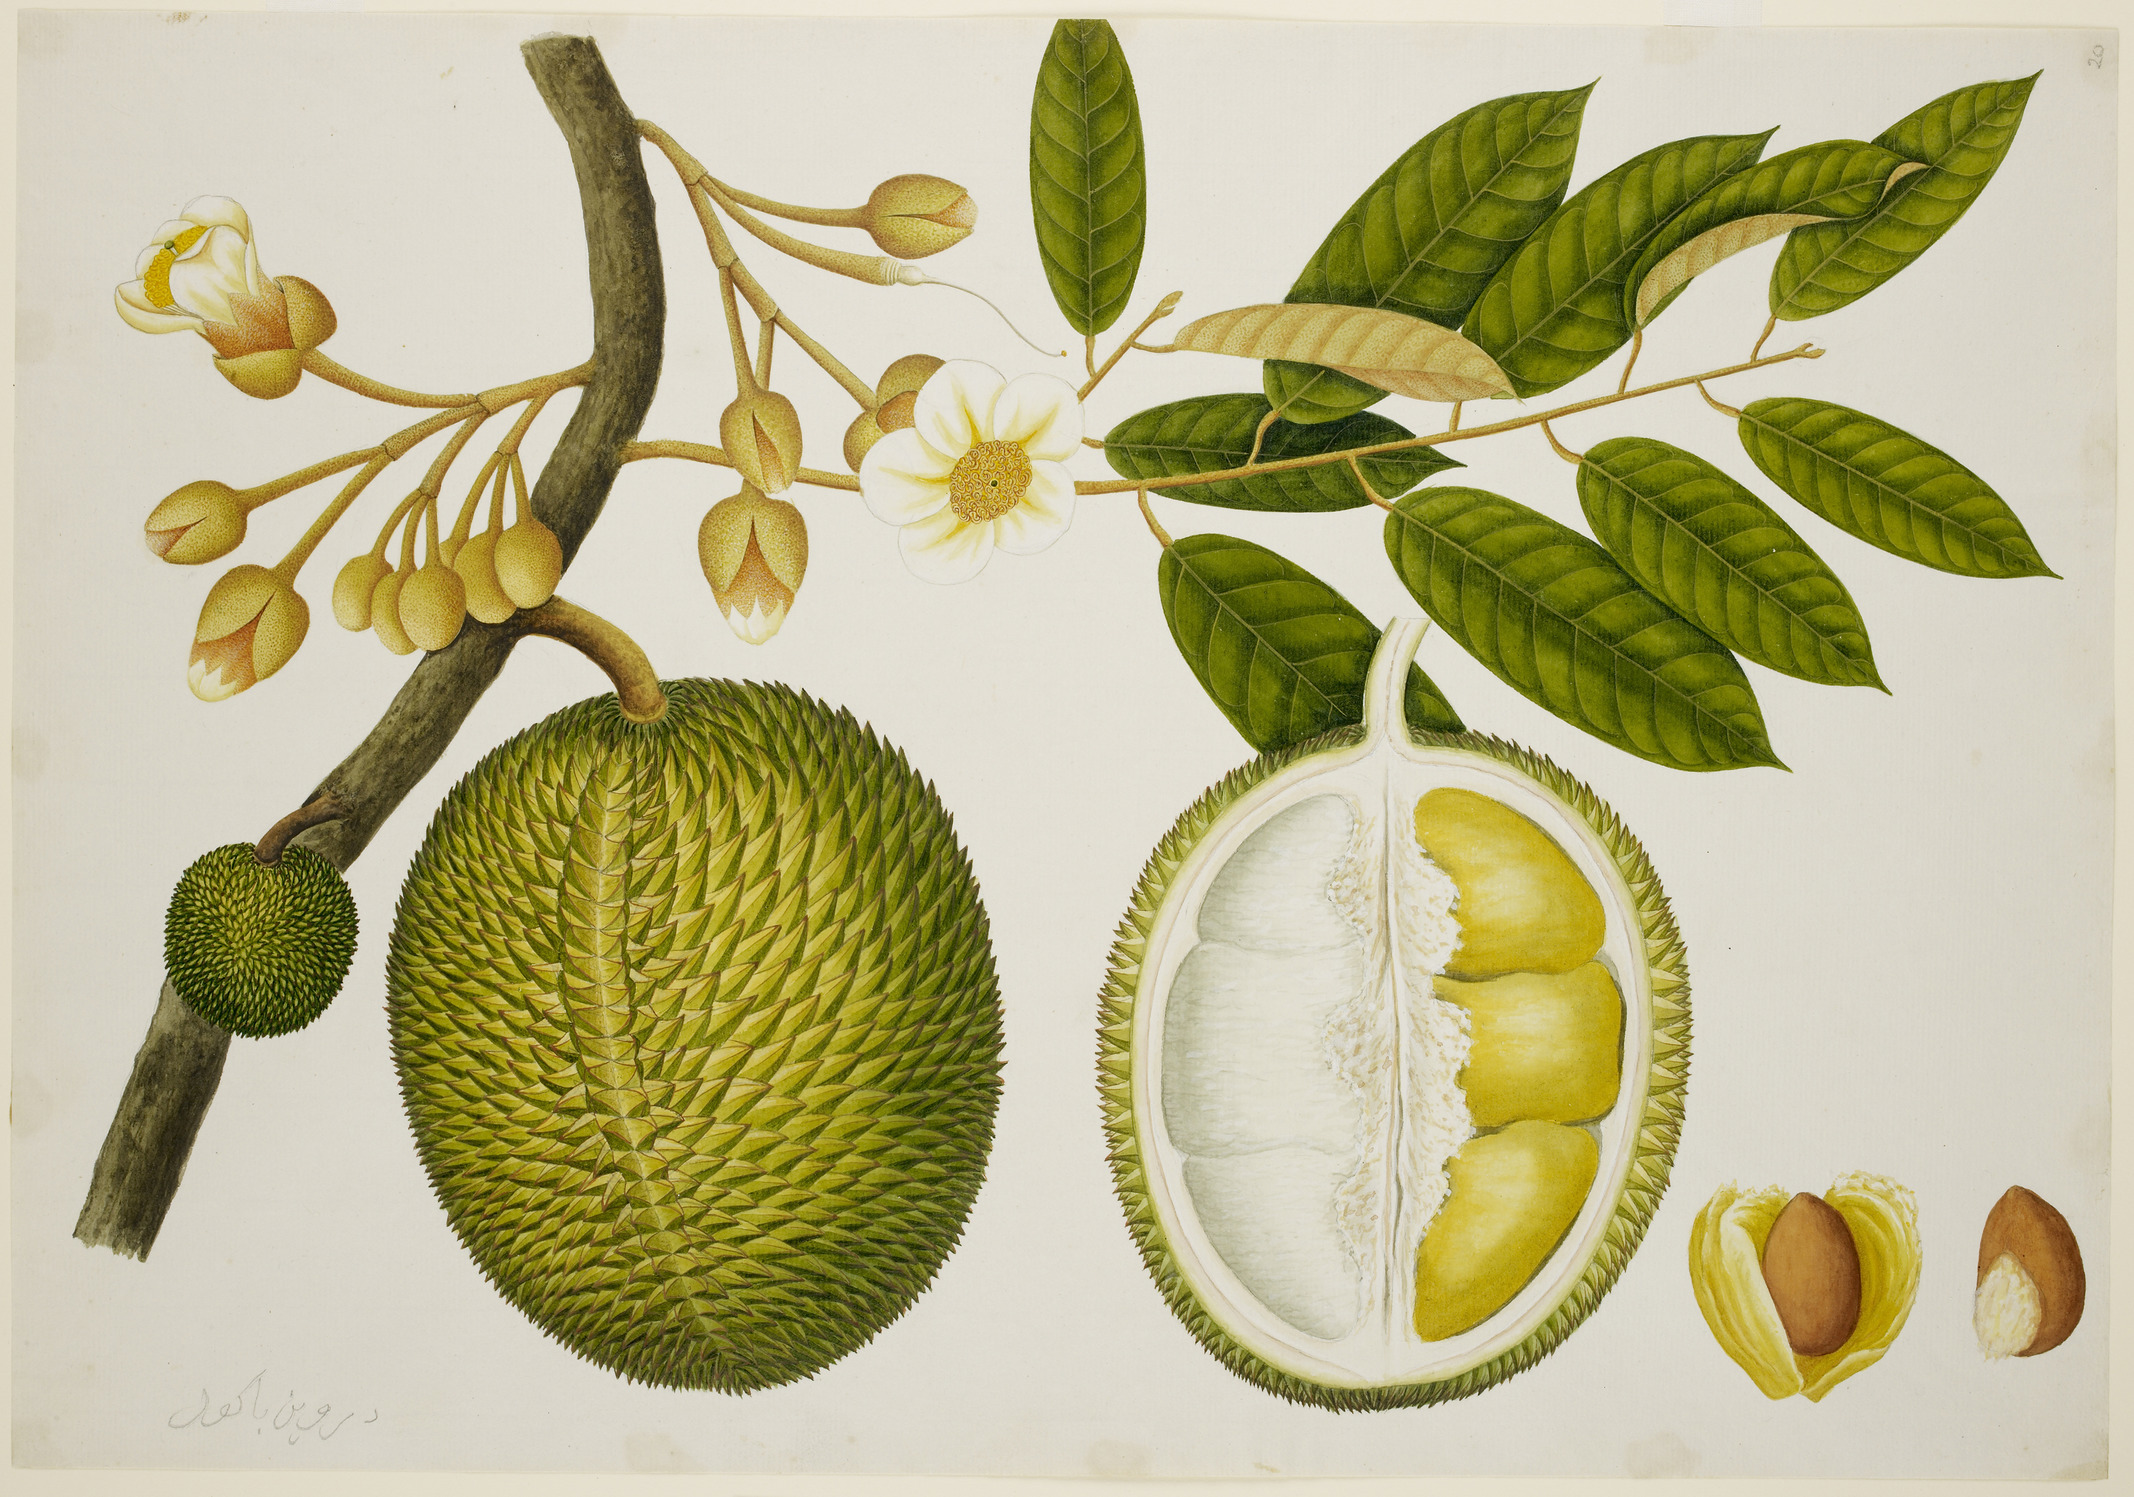 Image of durian